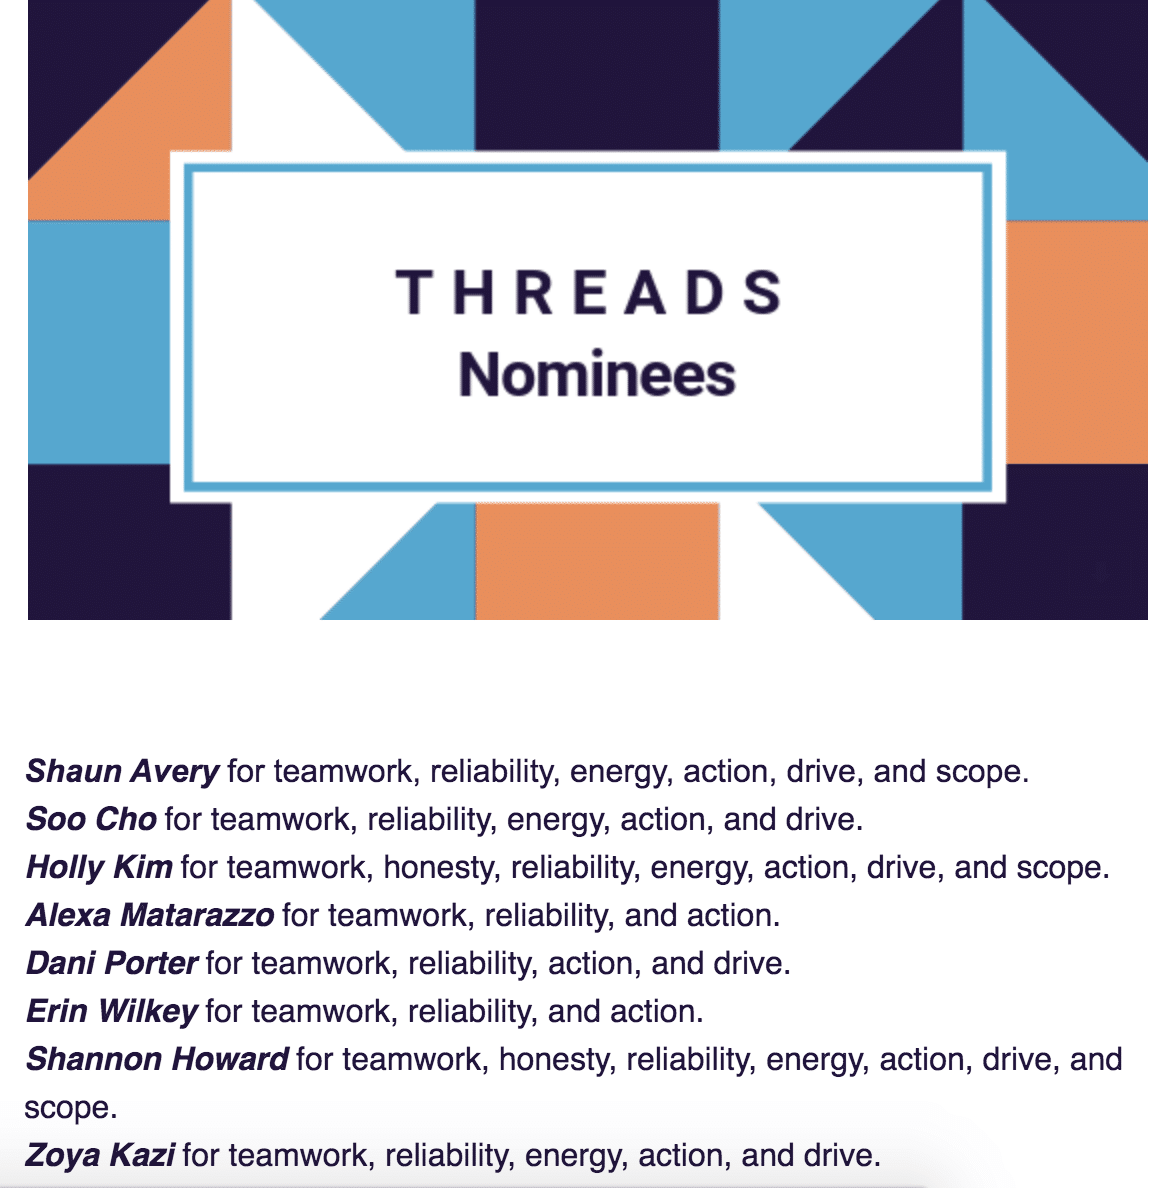 THREADS nomination